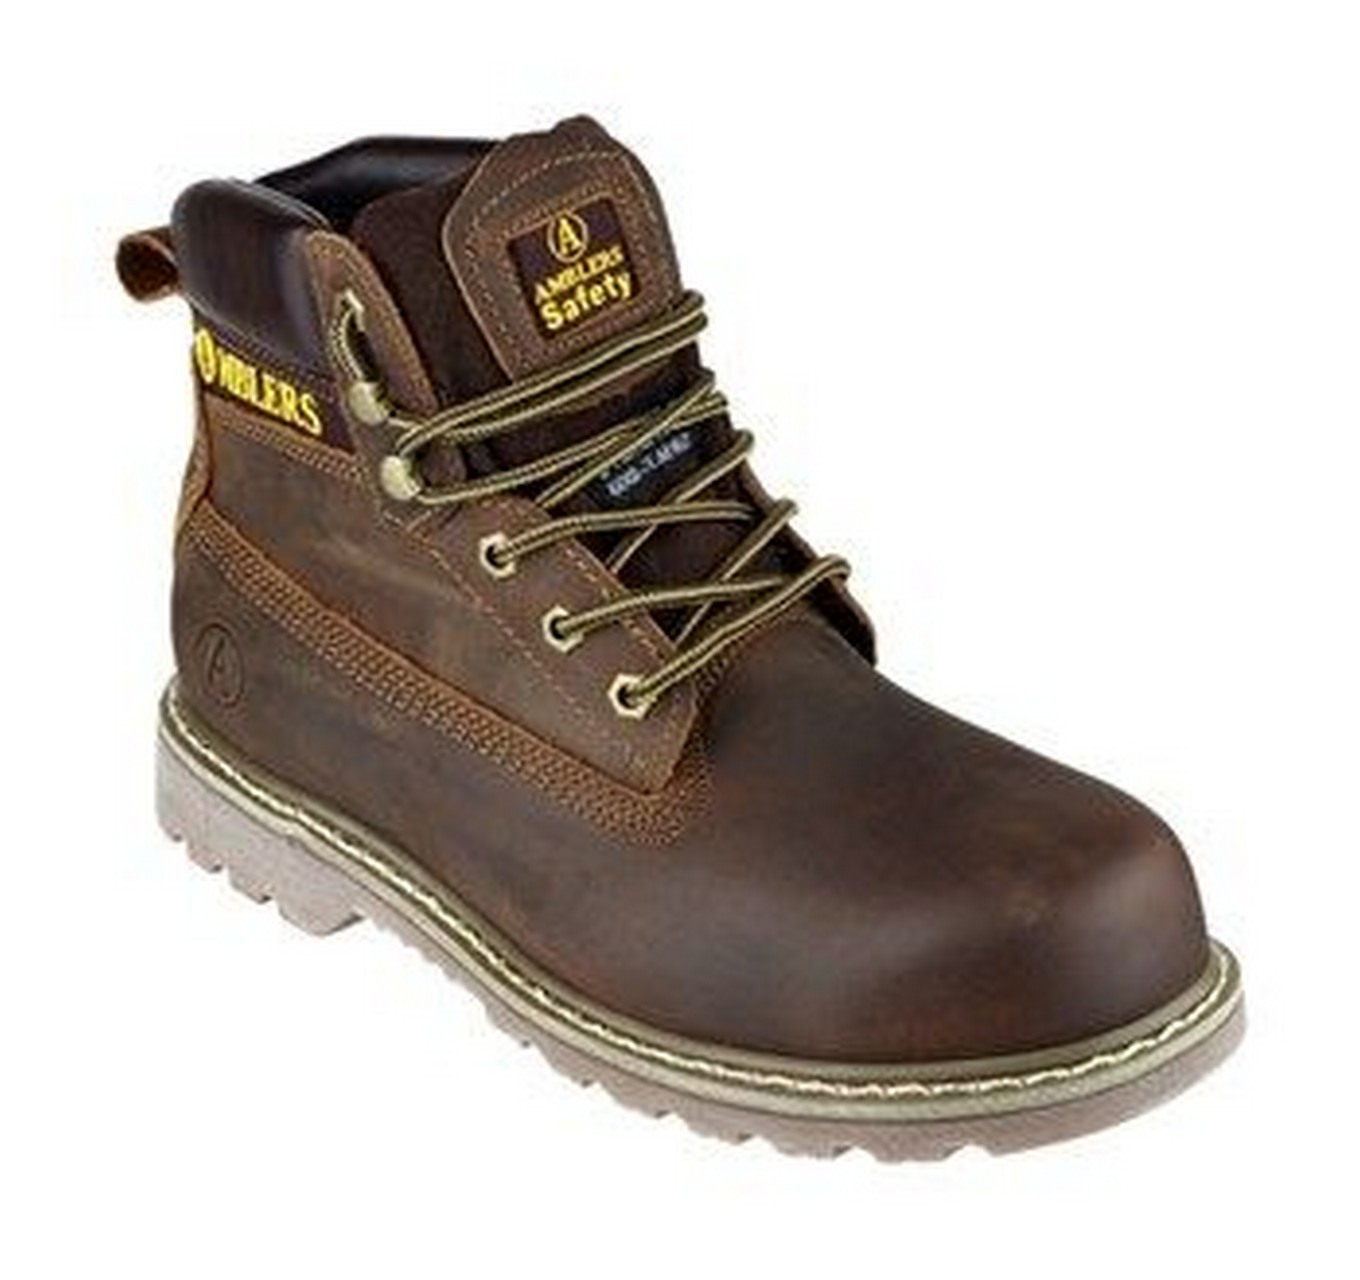 Safety Boot Amblers Fs164 9